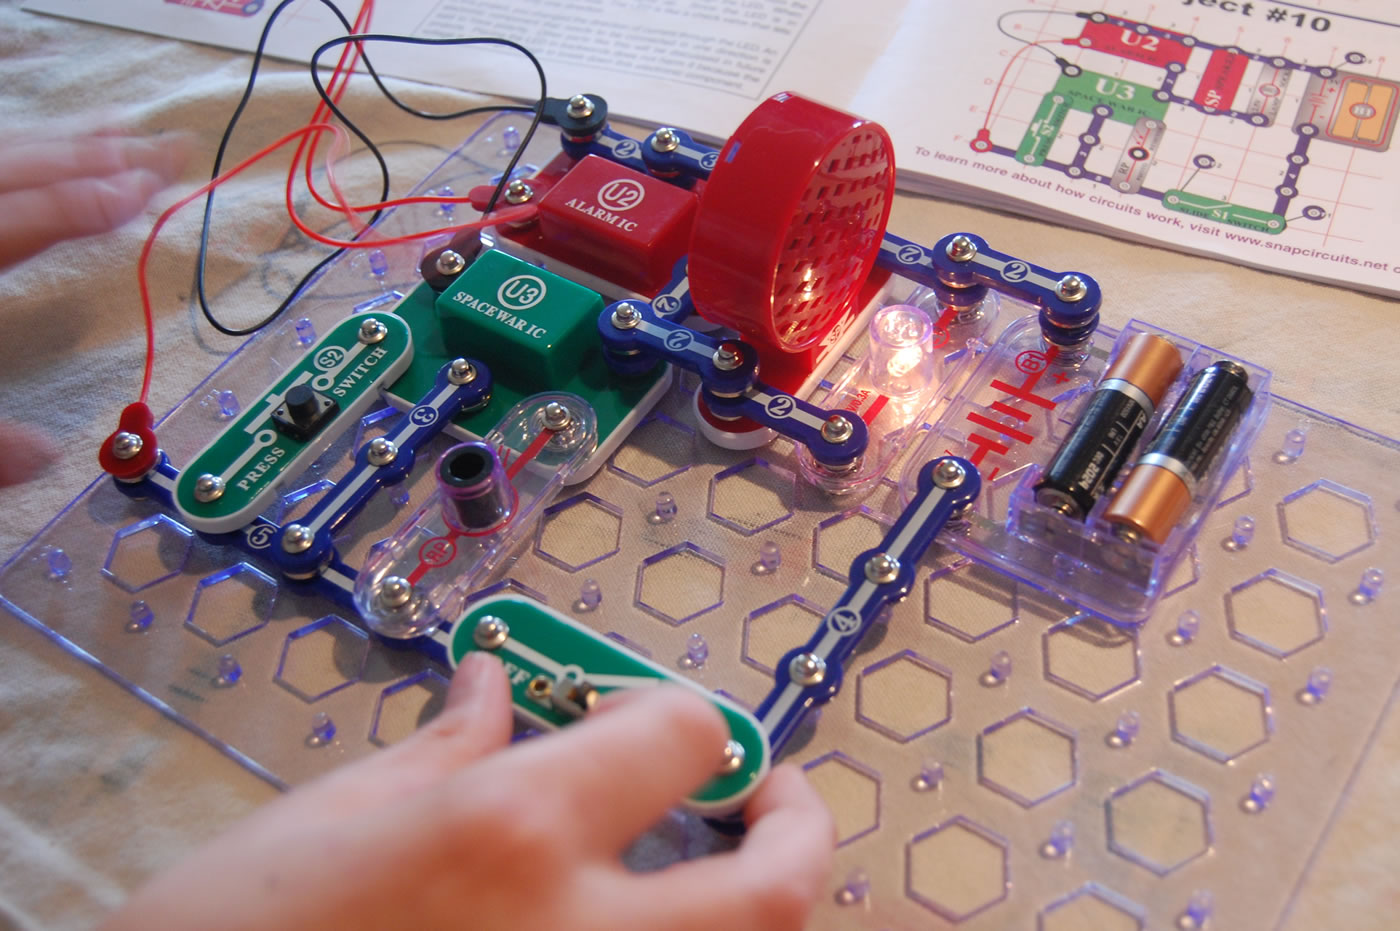 Cool Electronic Snap Circuit Kit One Kid39s Blogging Adventure